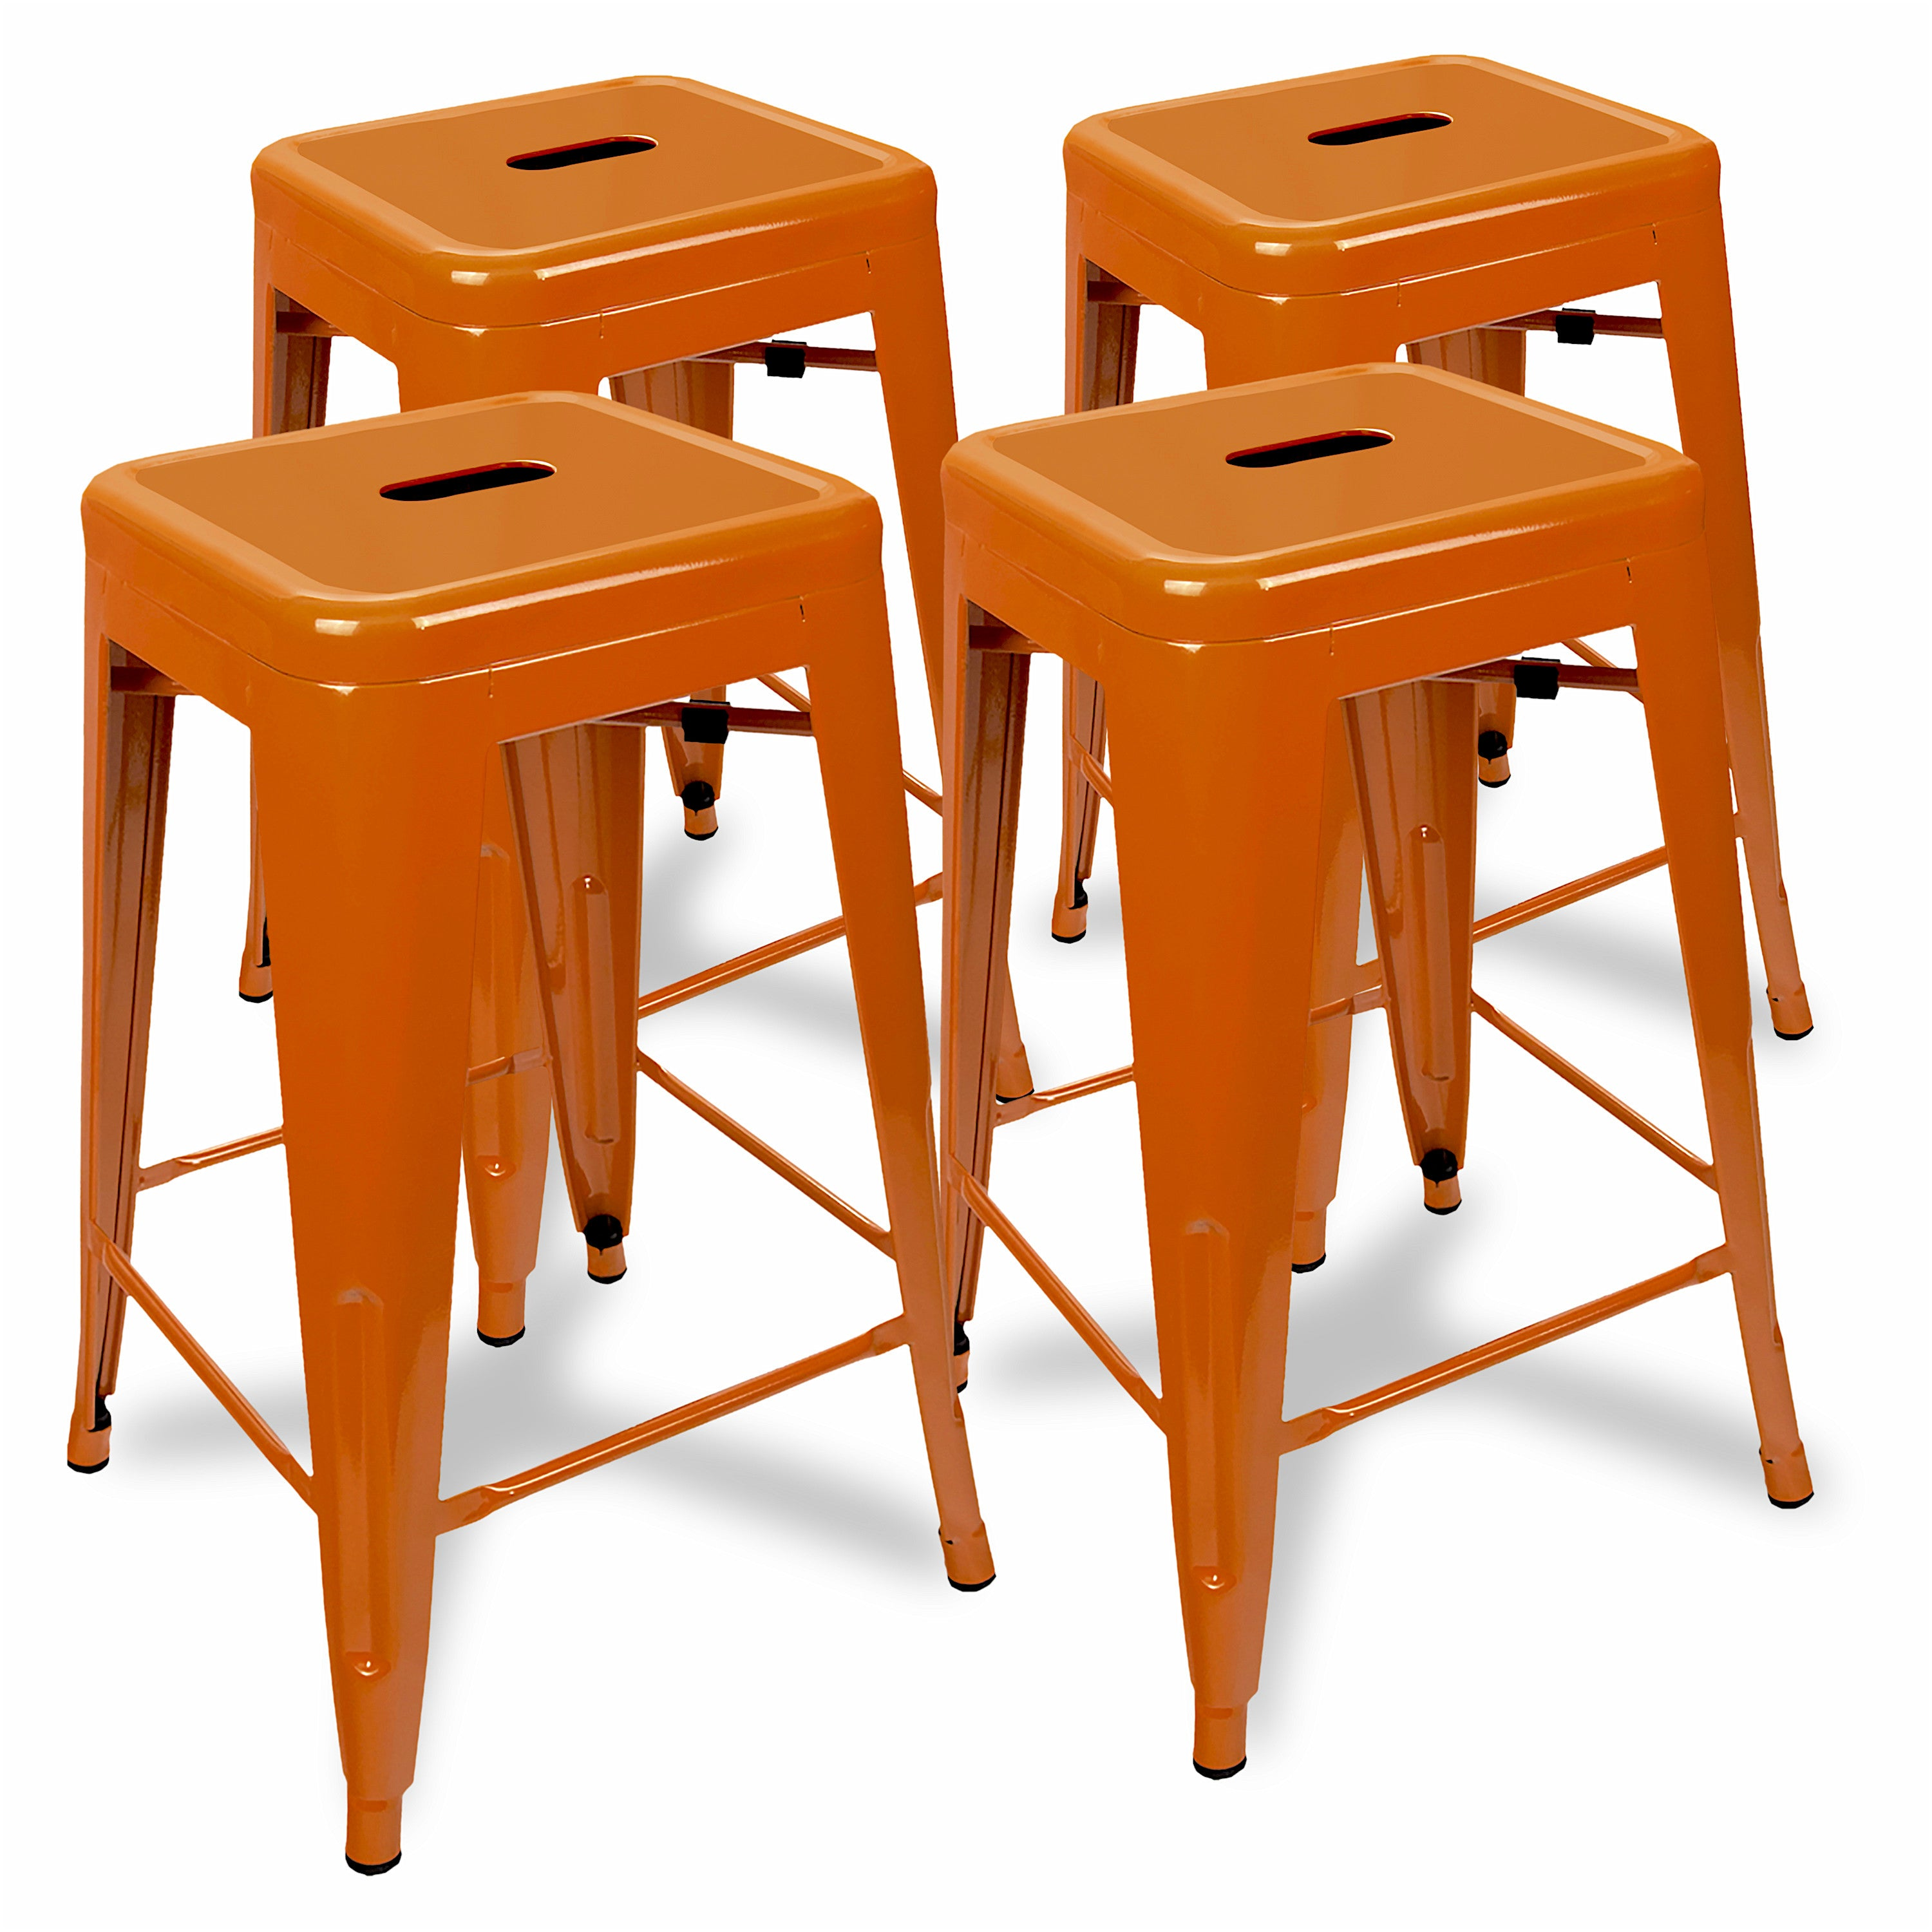 decor height linon counter chair colors bar home itm is patches stool chairs claridge mutliple image loading